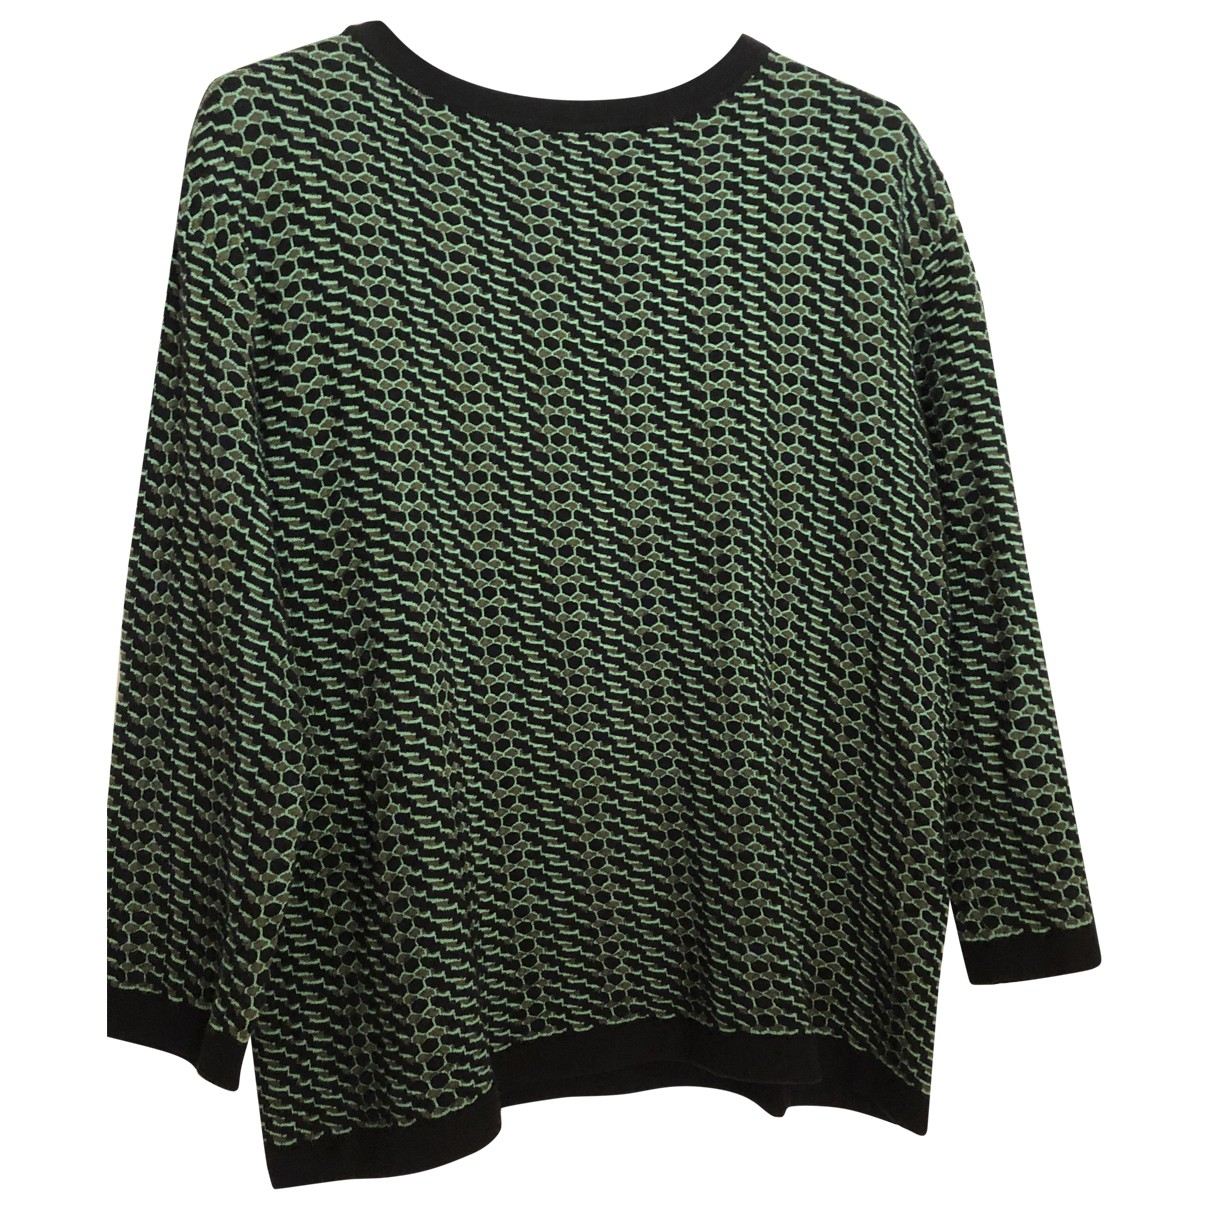 M Missoni \N Green Cotton Knitwear for Women M International